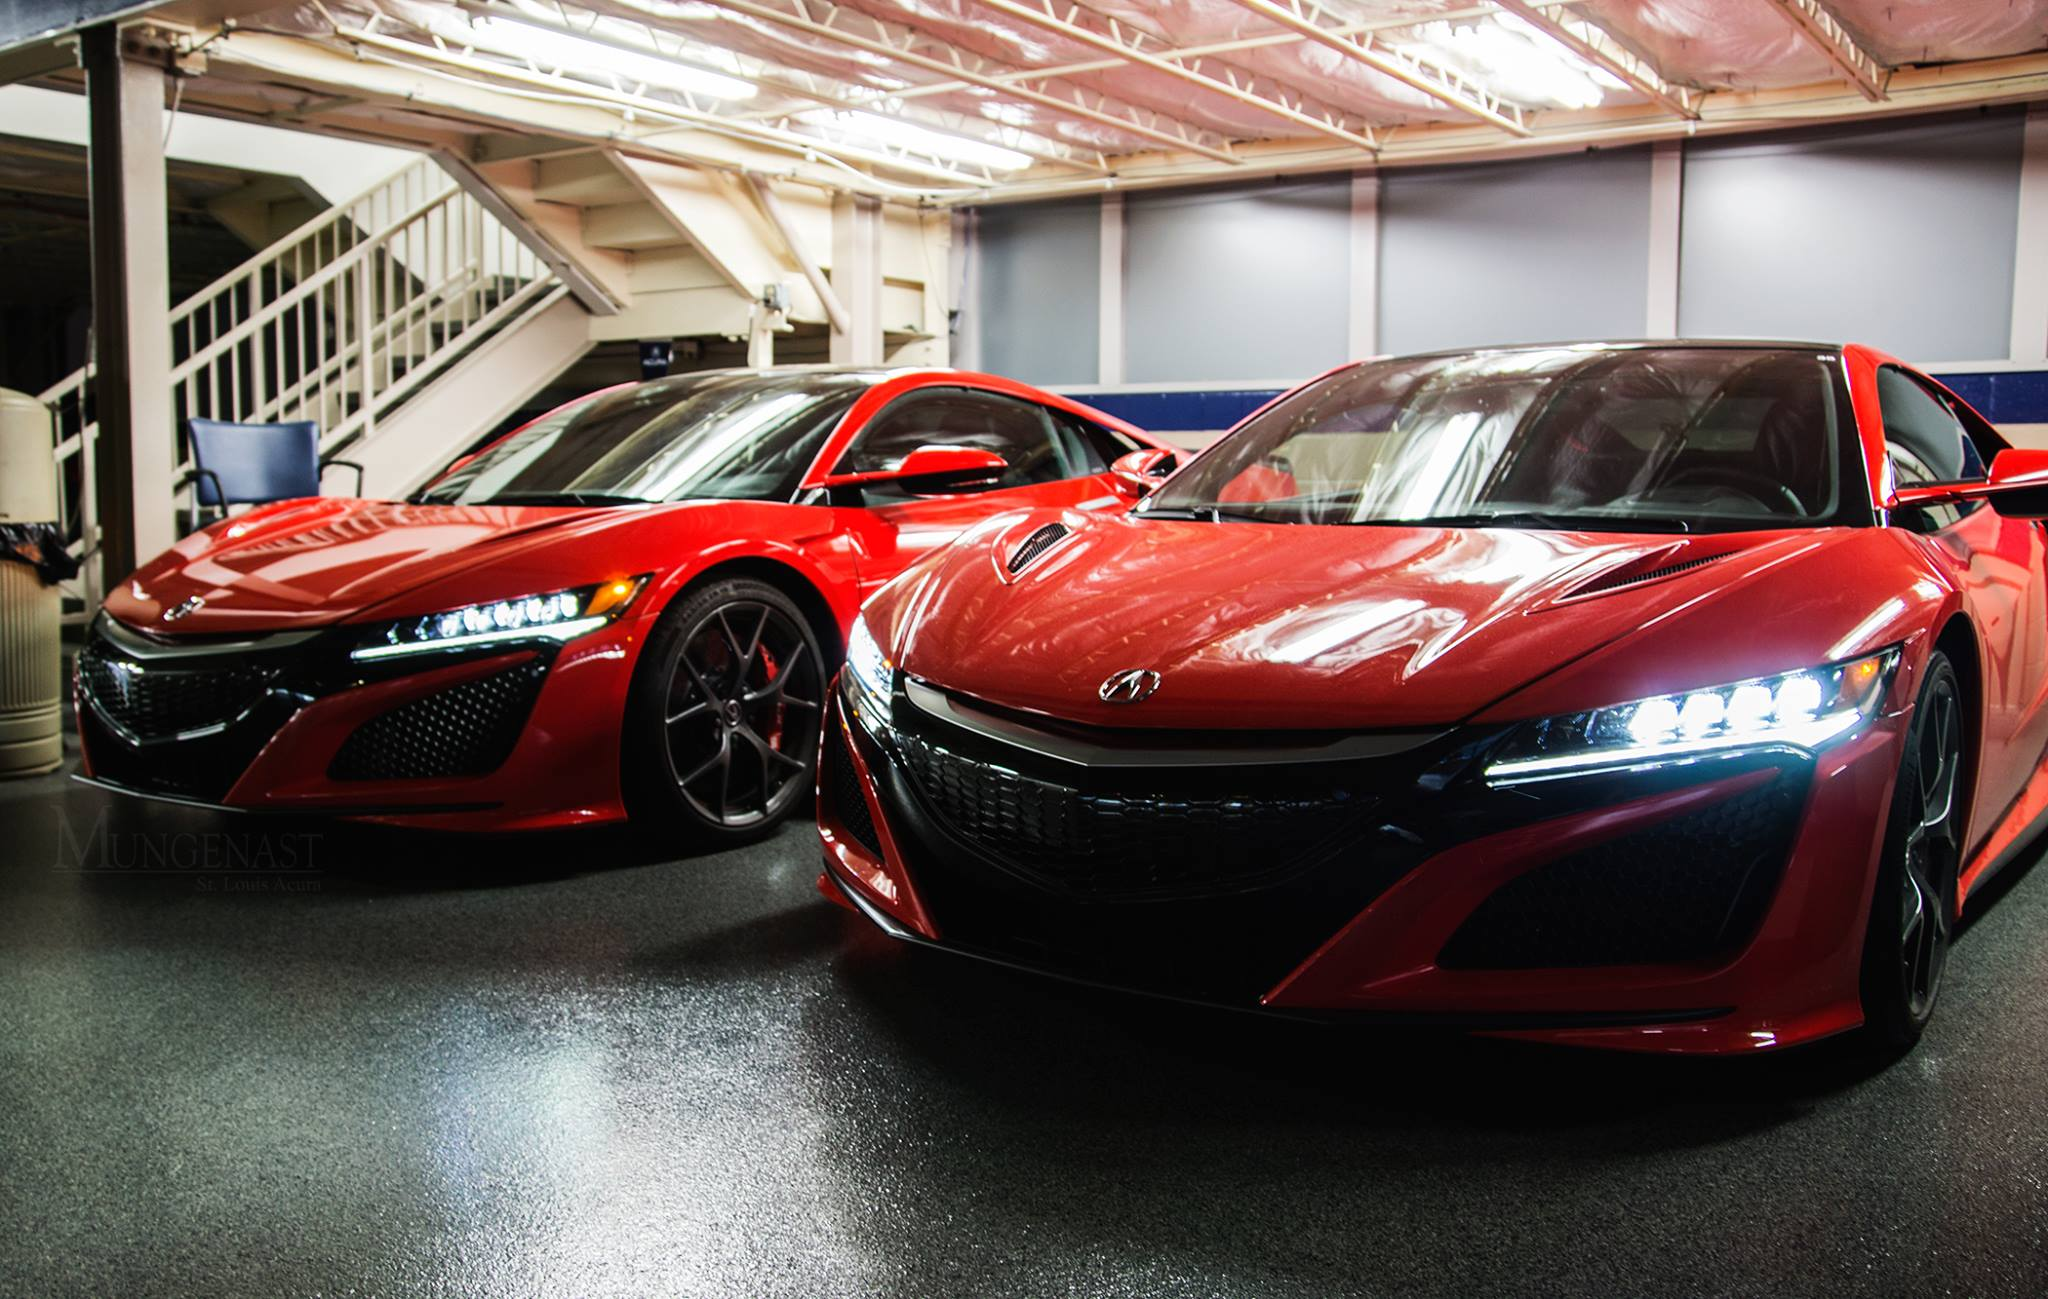 2014 Honda Nsx Type R Price And Release Date | Apps Directories